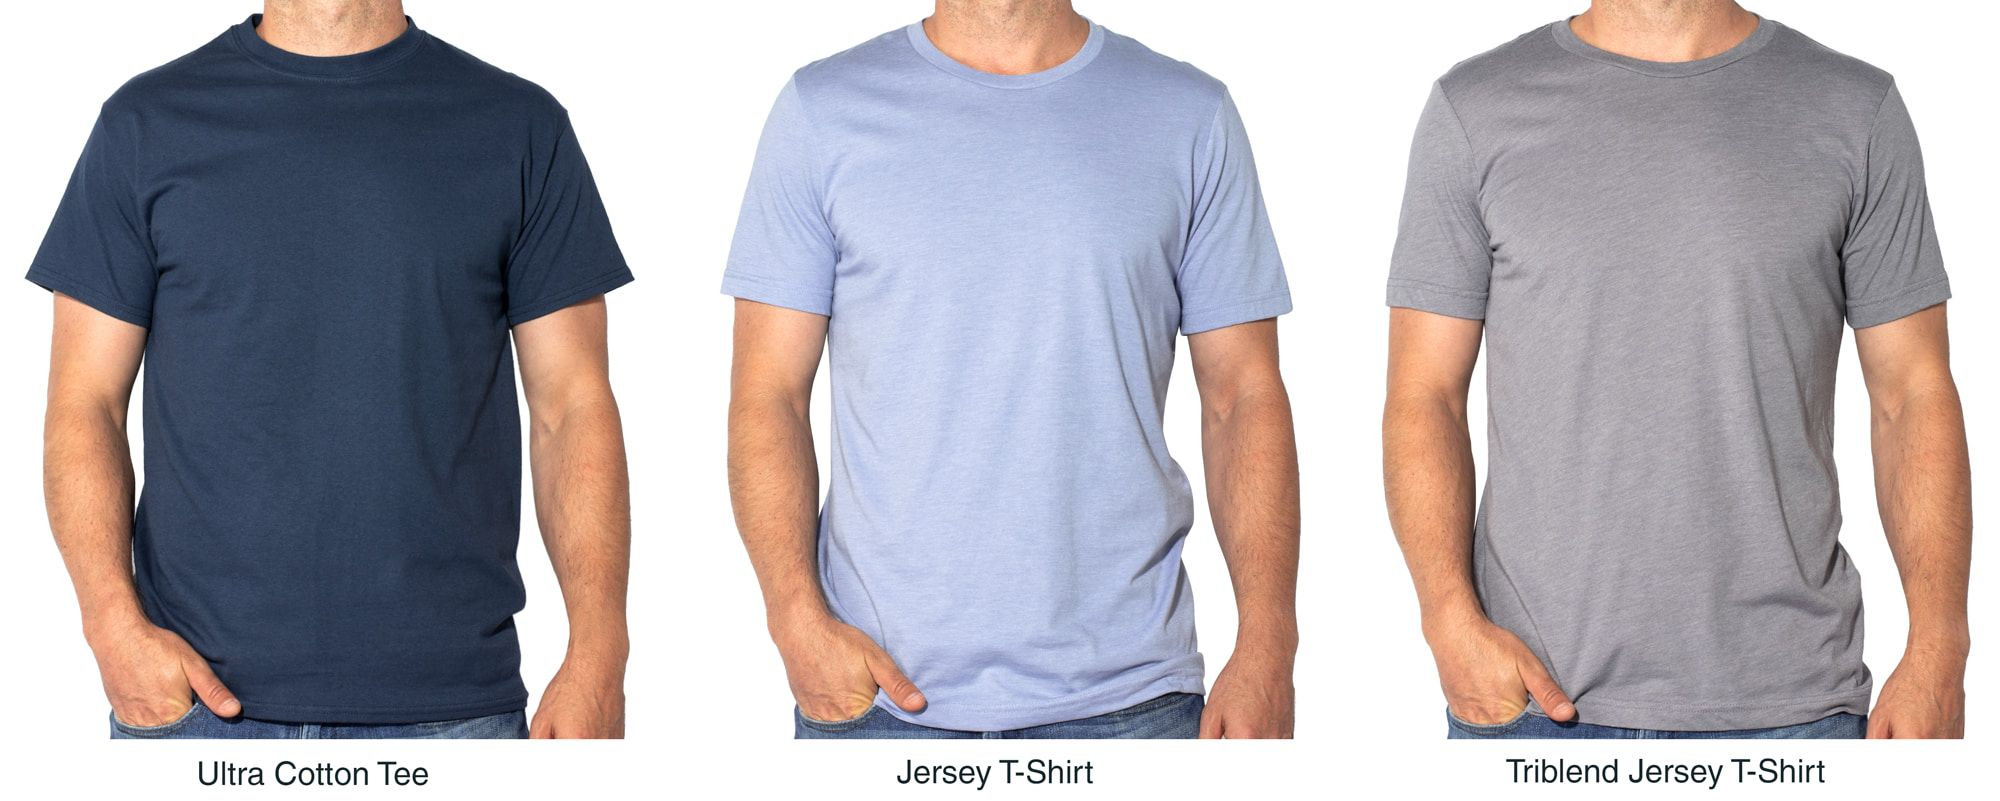 Product lineup comparing the fit of the Gildan Ultra Cotton Tee, the Bella Canvas Jersey T-Shirt, and the Bella Canvas Triblend Jersey T-Shirt.